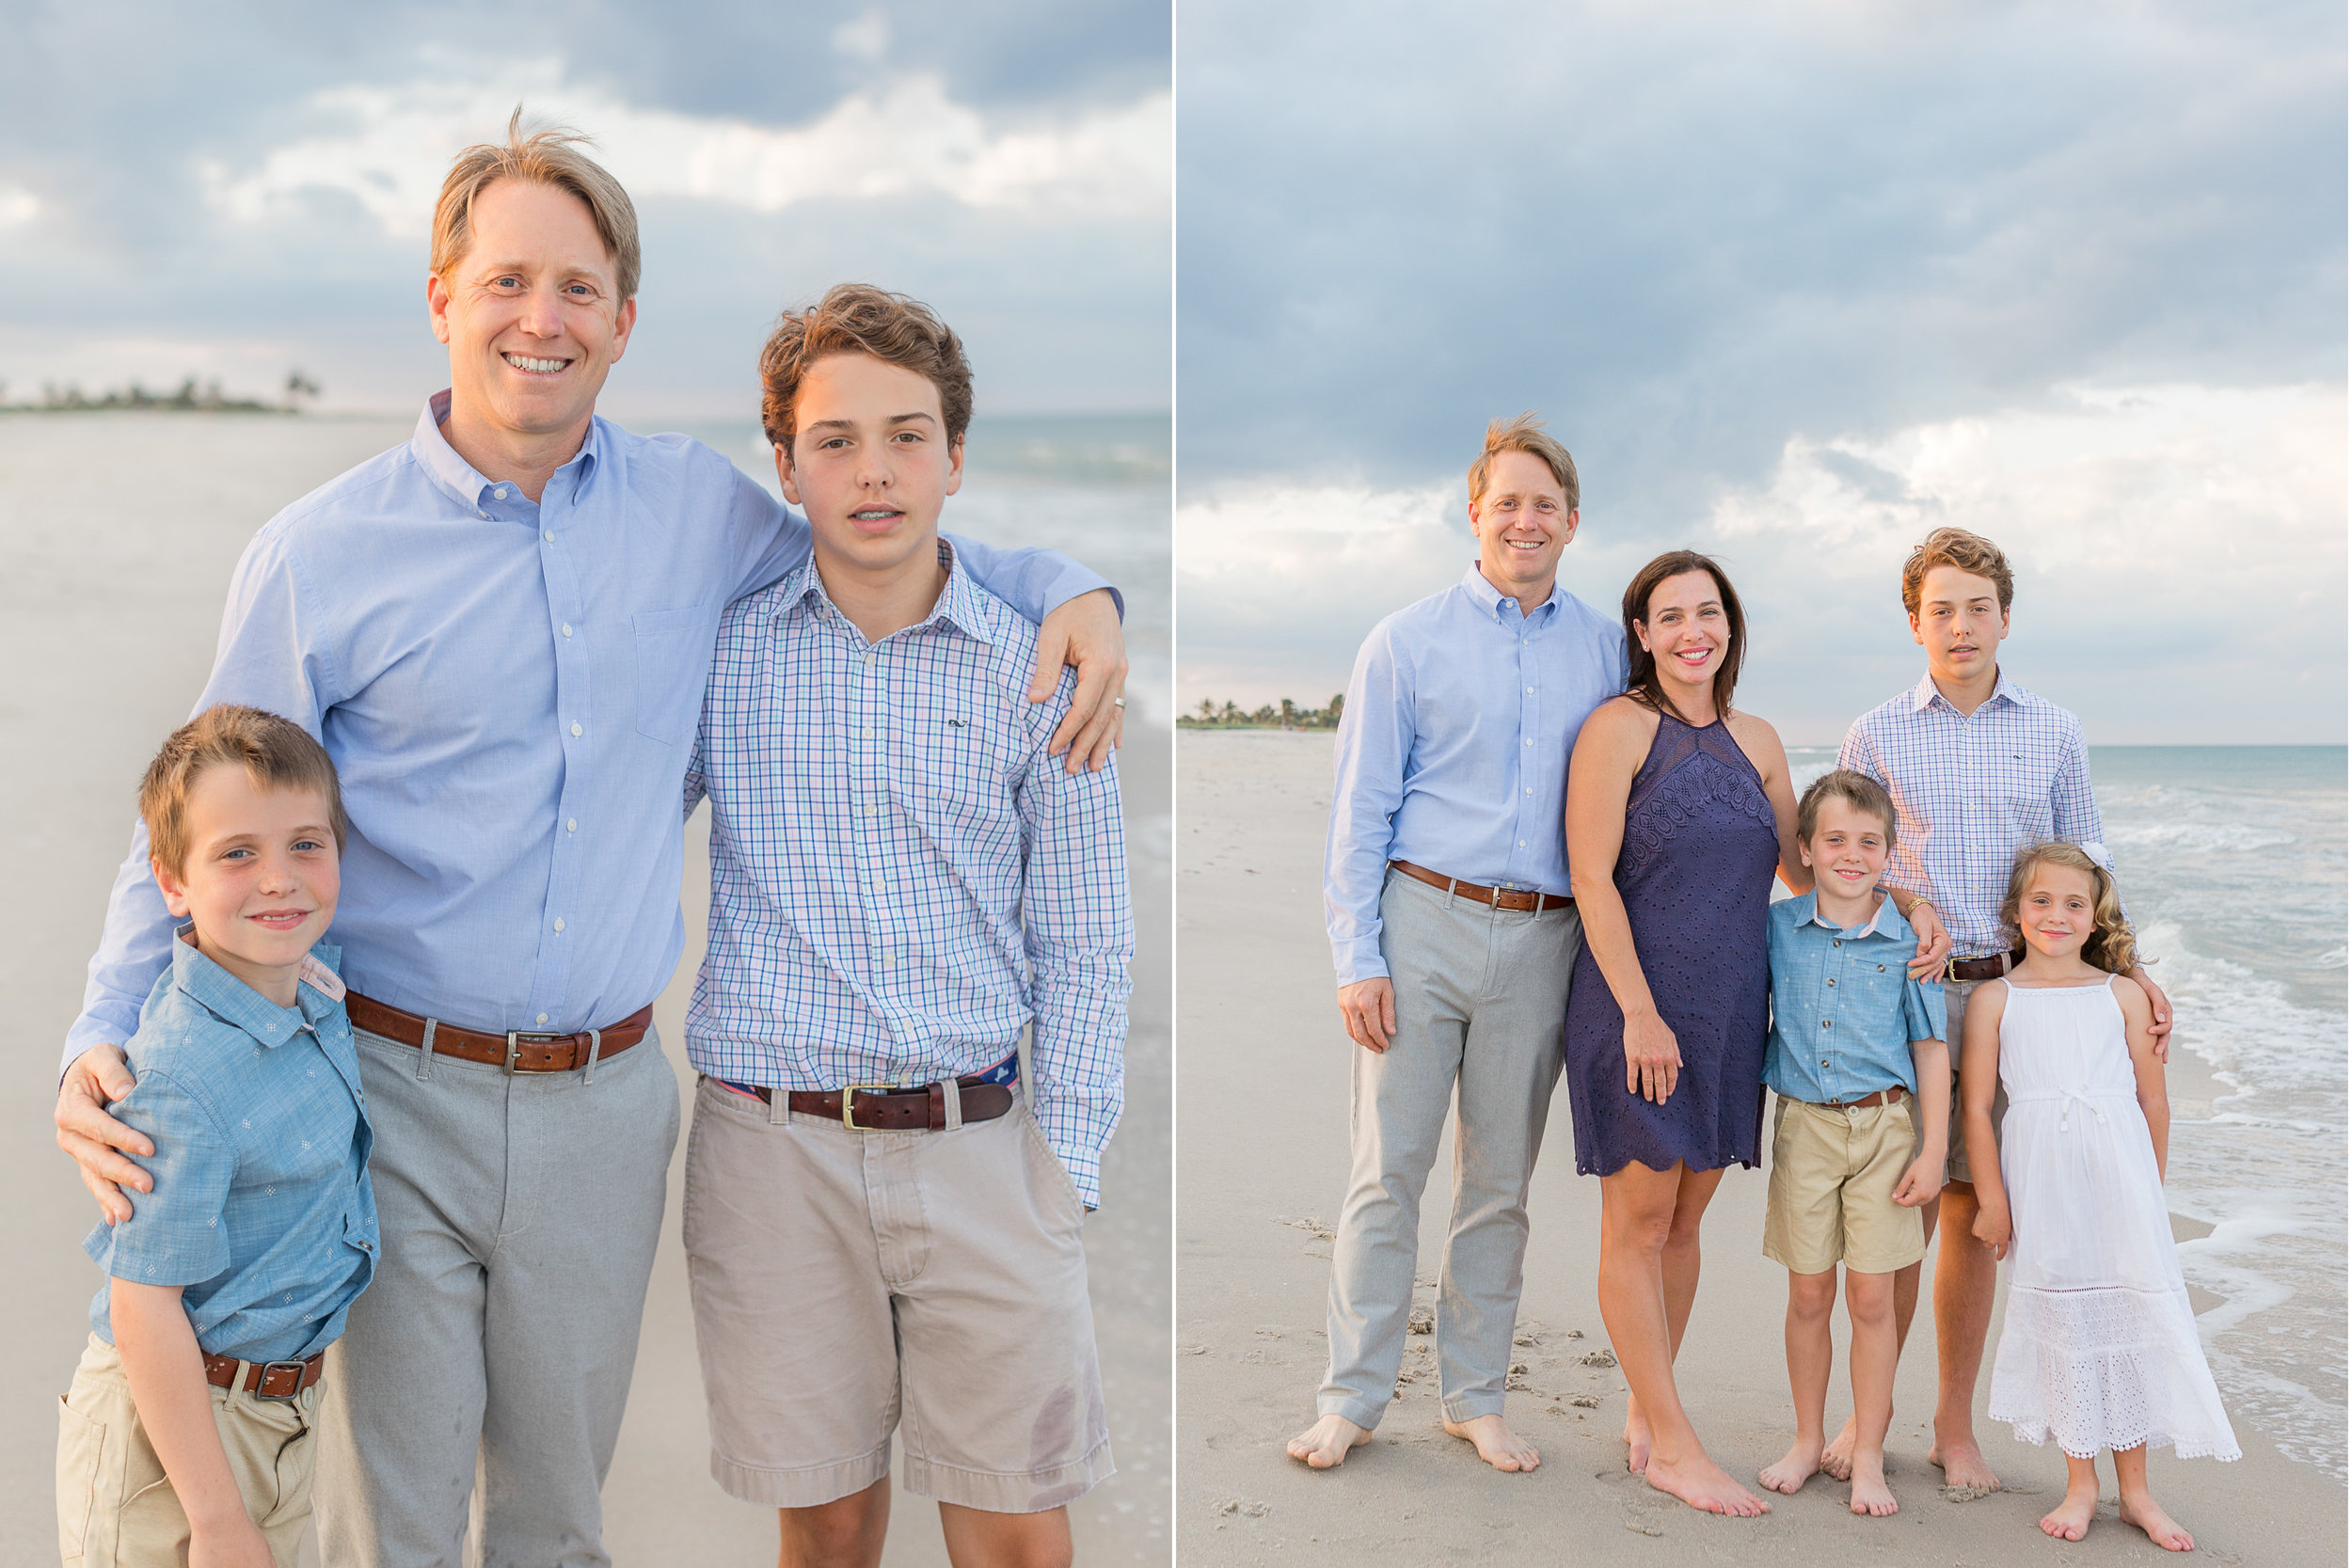 treasurecoastfamilyphotographer.jpg